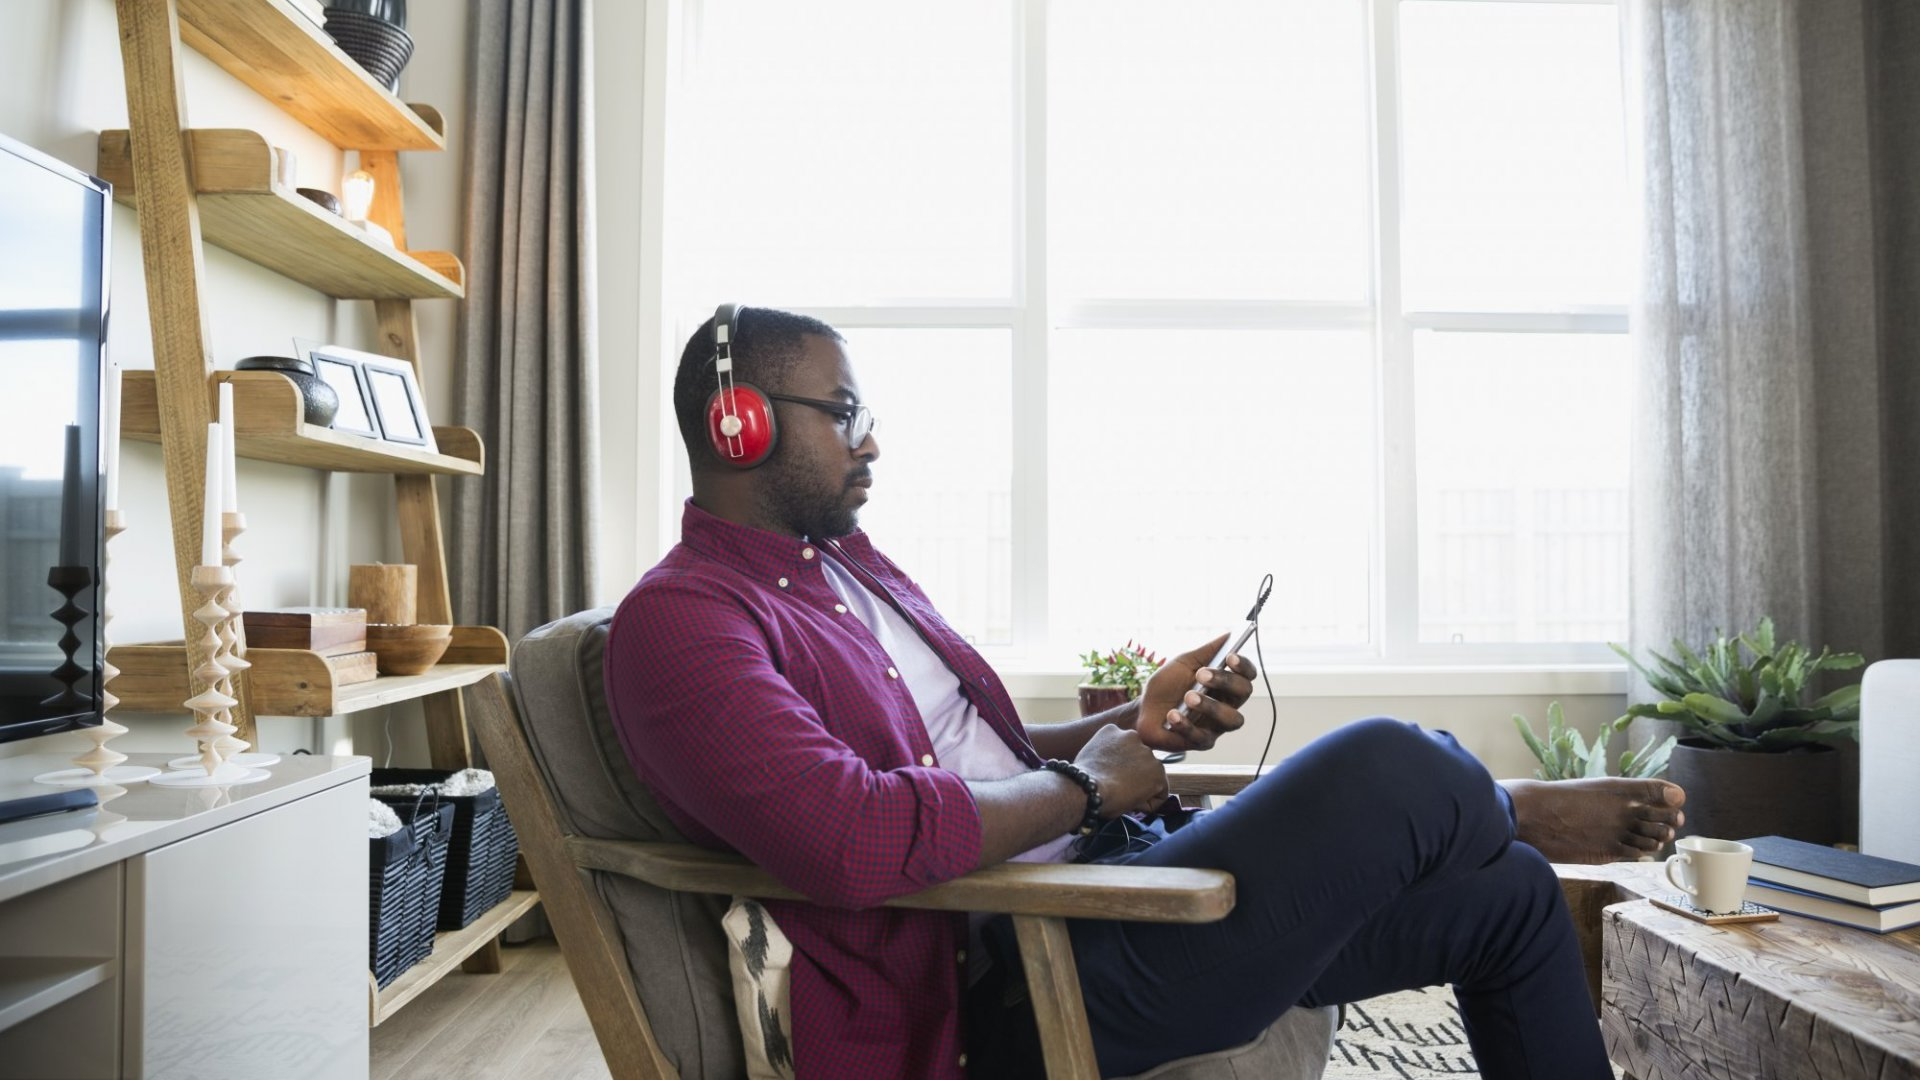 7 Podcasts to Add to Your Weekly Schedule